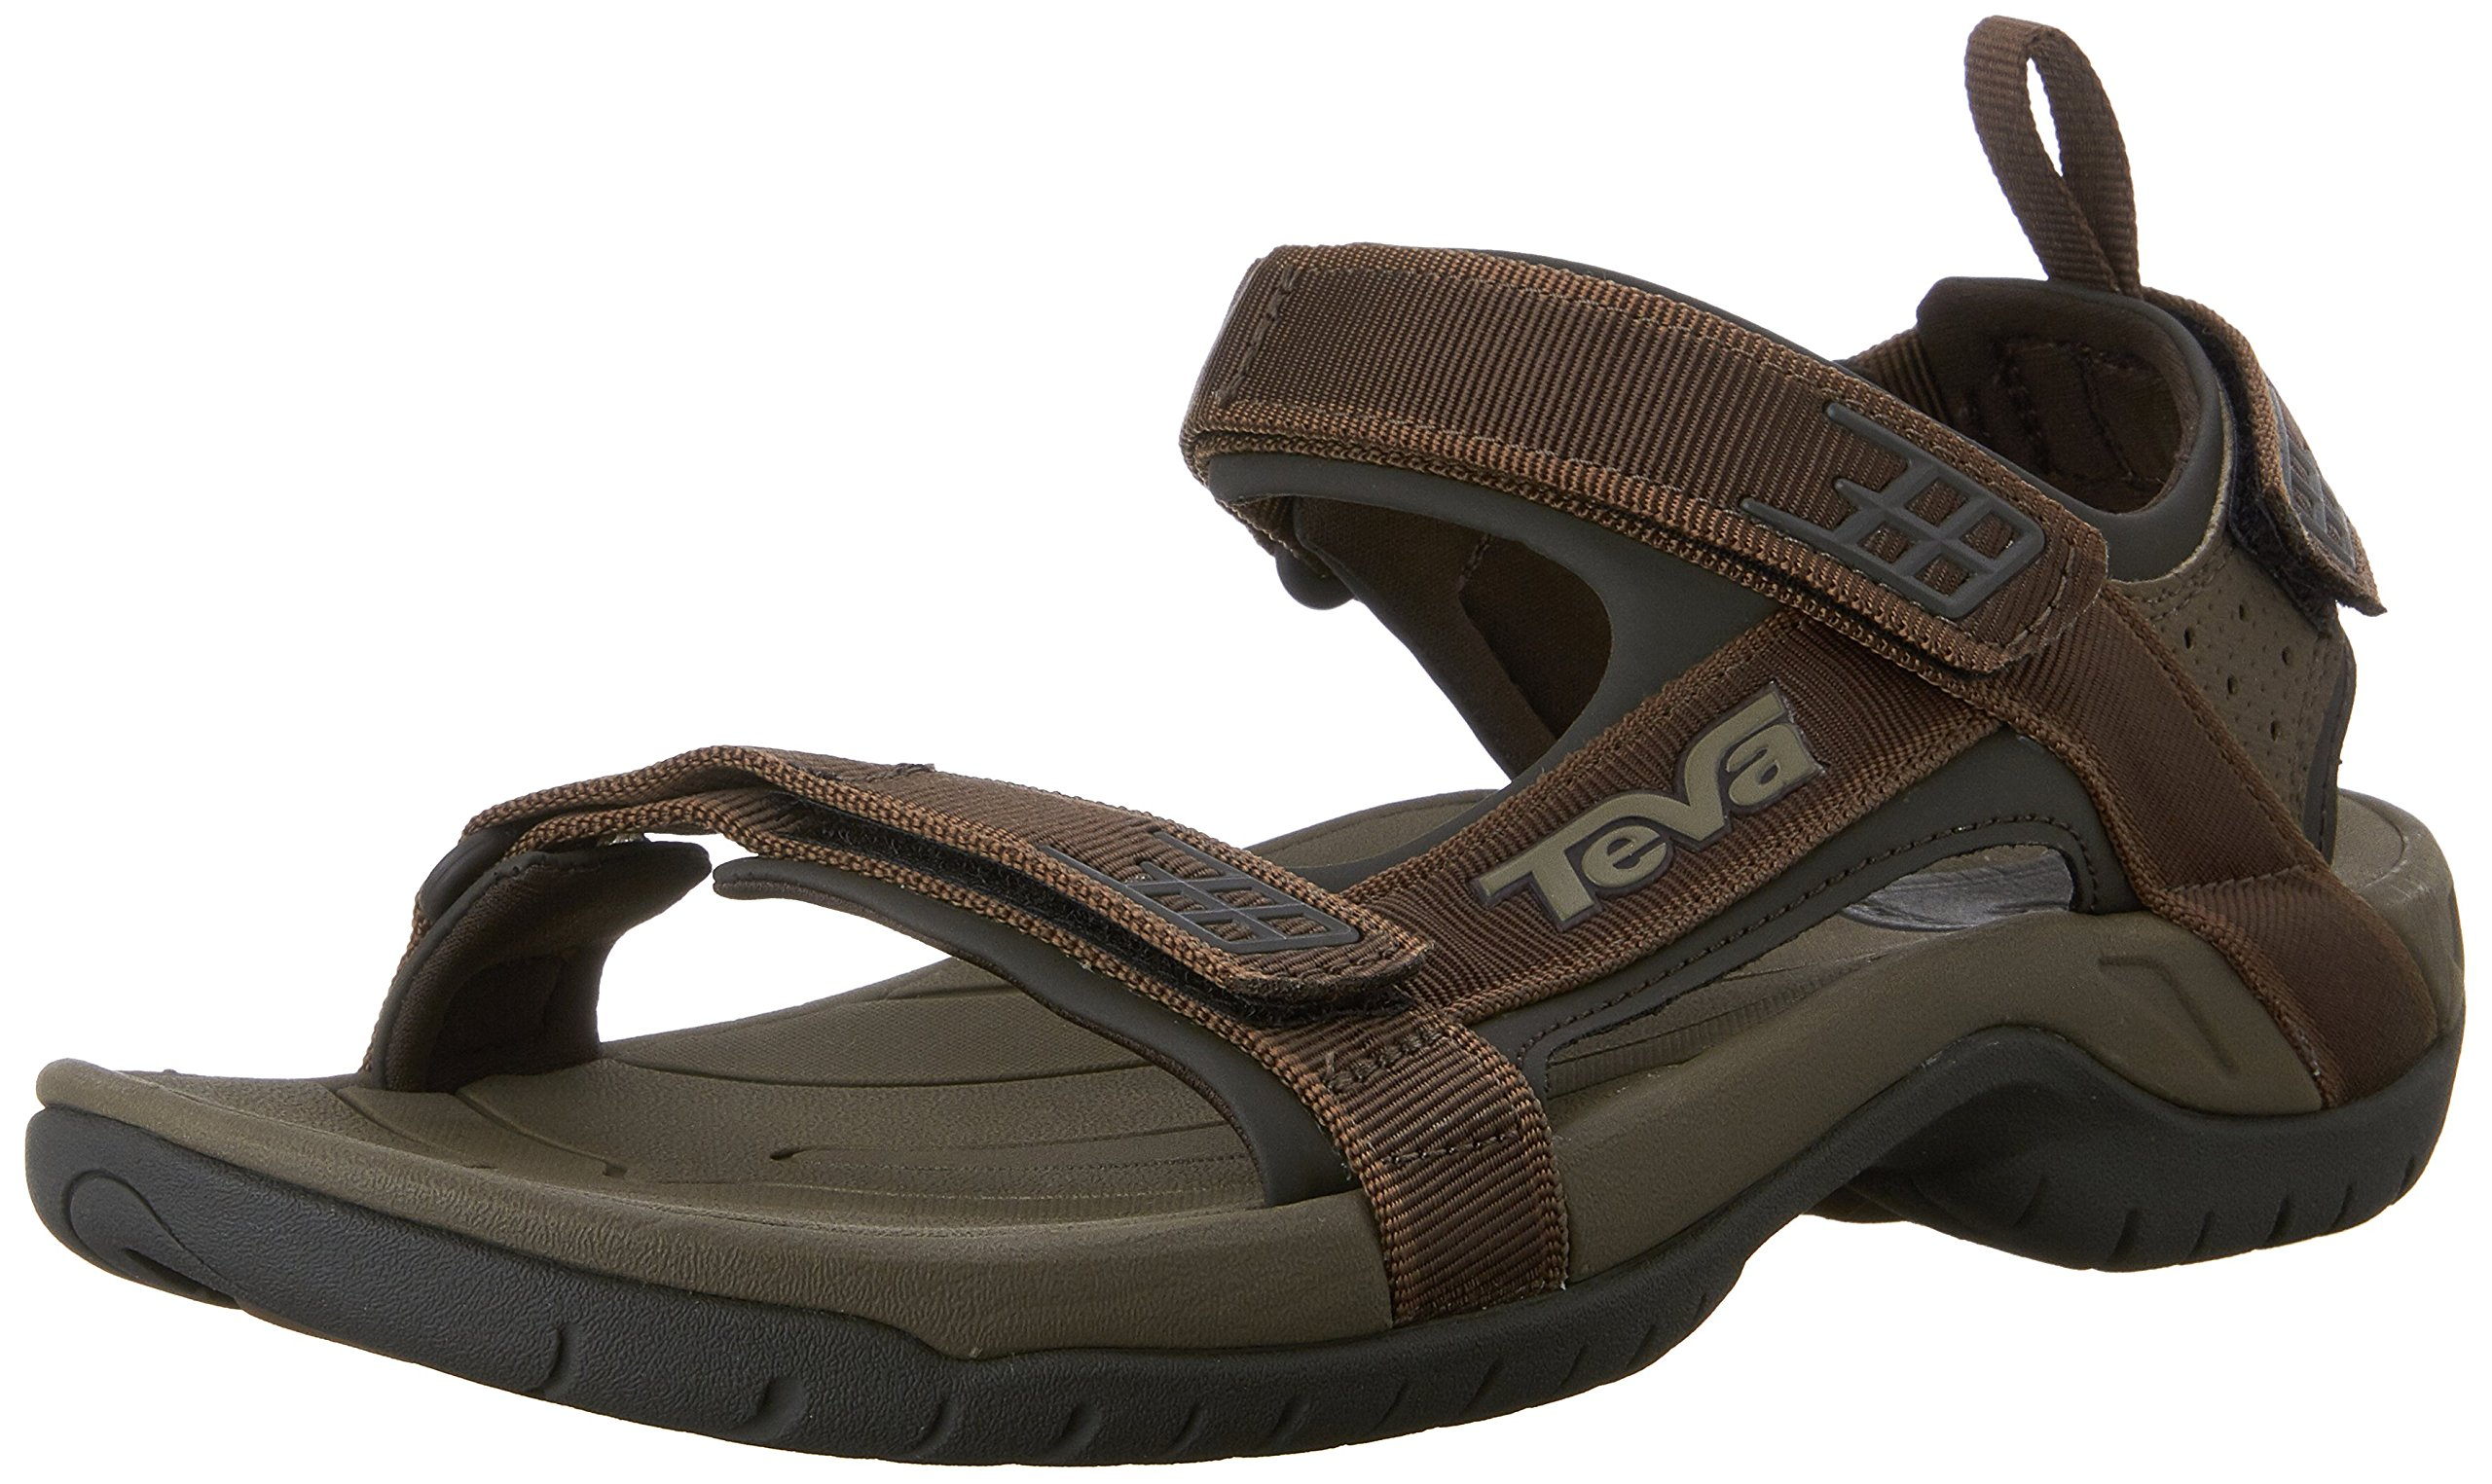 Teva Men's Tanza Sandal,Brown,7 M US